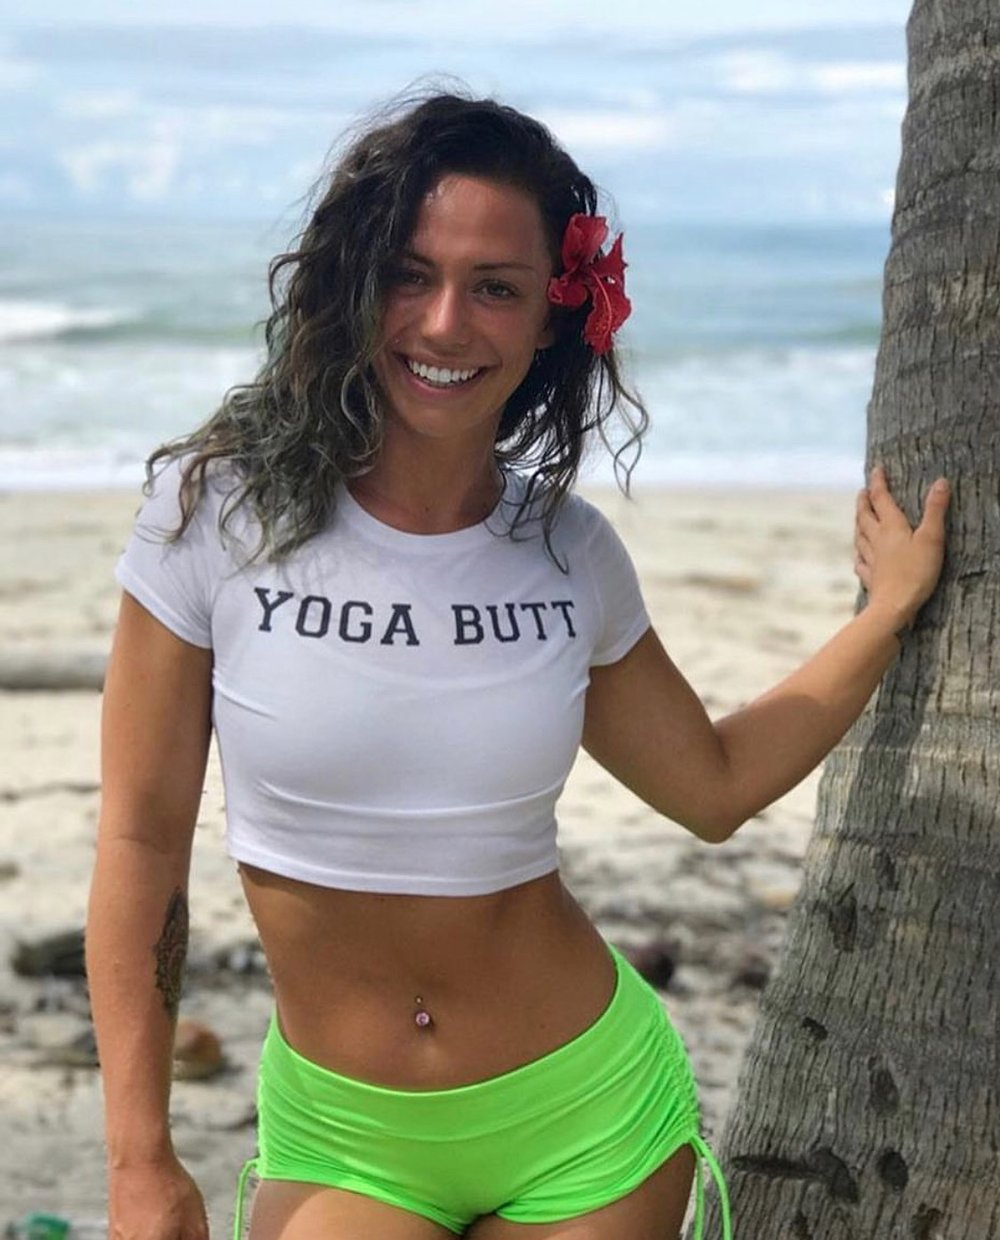 """Taylor Johnson, Acro Yoga & Yoga Teacher - Sup fam! It's ya girl Tay. I am beyond excited to be co-leading Namaste As Fuck takes Tulum with the NAF crew. My NAF fam is so special to me, and there's no one I'd rather be soaking up some Mexican sunshine with. NAF is all about tapping into the badassery we all have within us and being real AF in all the things we do. Whether yoga makes you want to scream """"FUCK THIS SHIT"""" or makes you see sunshine and rainbows everywhere, we are here for it. NAF is all about being your most authentic self and that is some shit I will ALWAYS get behind.So with that said come twerk, and yoga, and Acro, and play with me in Tulum bbs! Don't miss out and all the fun times and sunshine. Love you friends <3"""